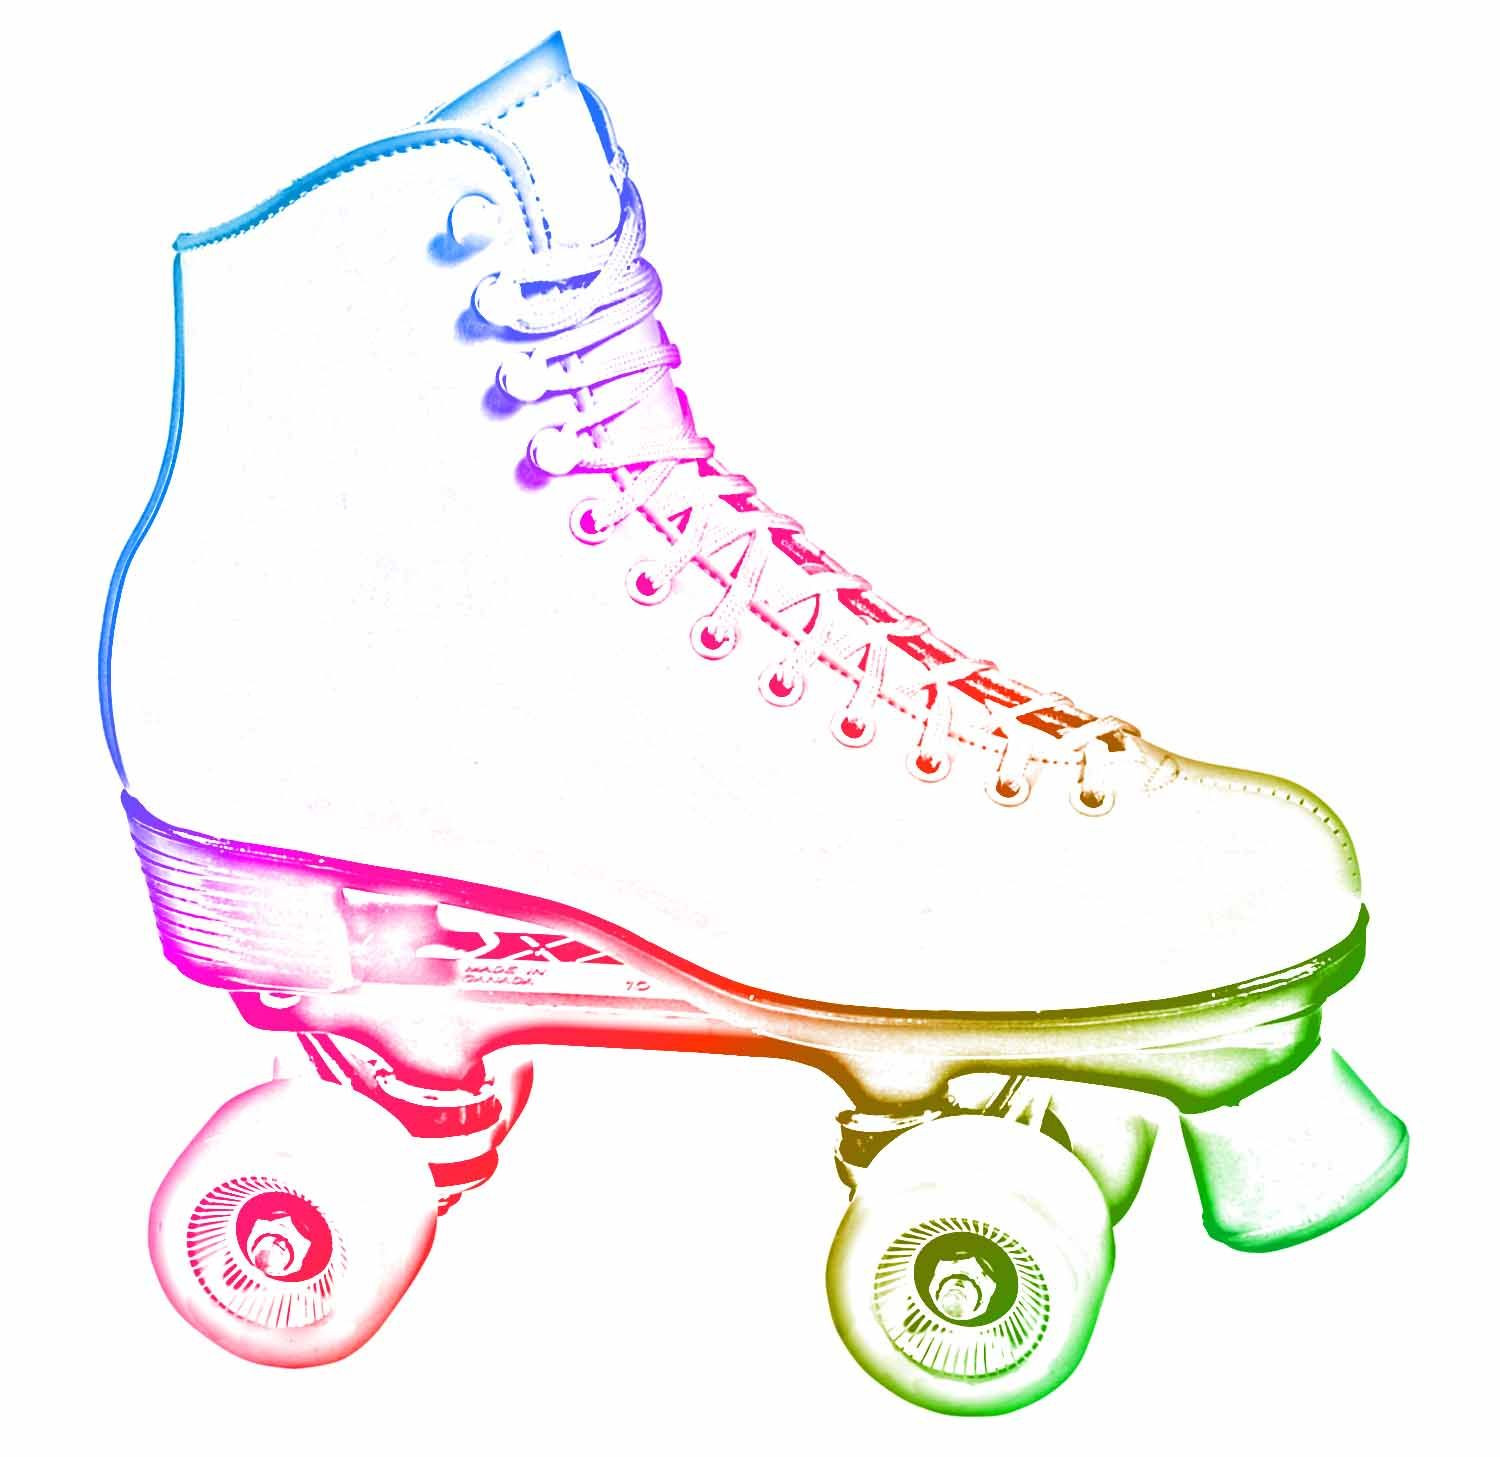 Skating clipart printable. Roller party invitations new clipart